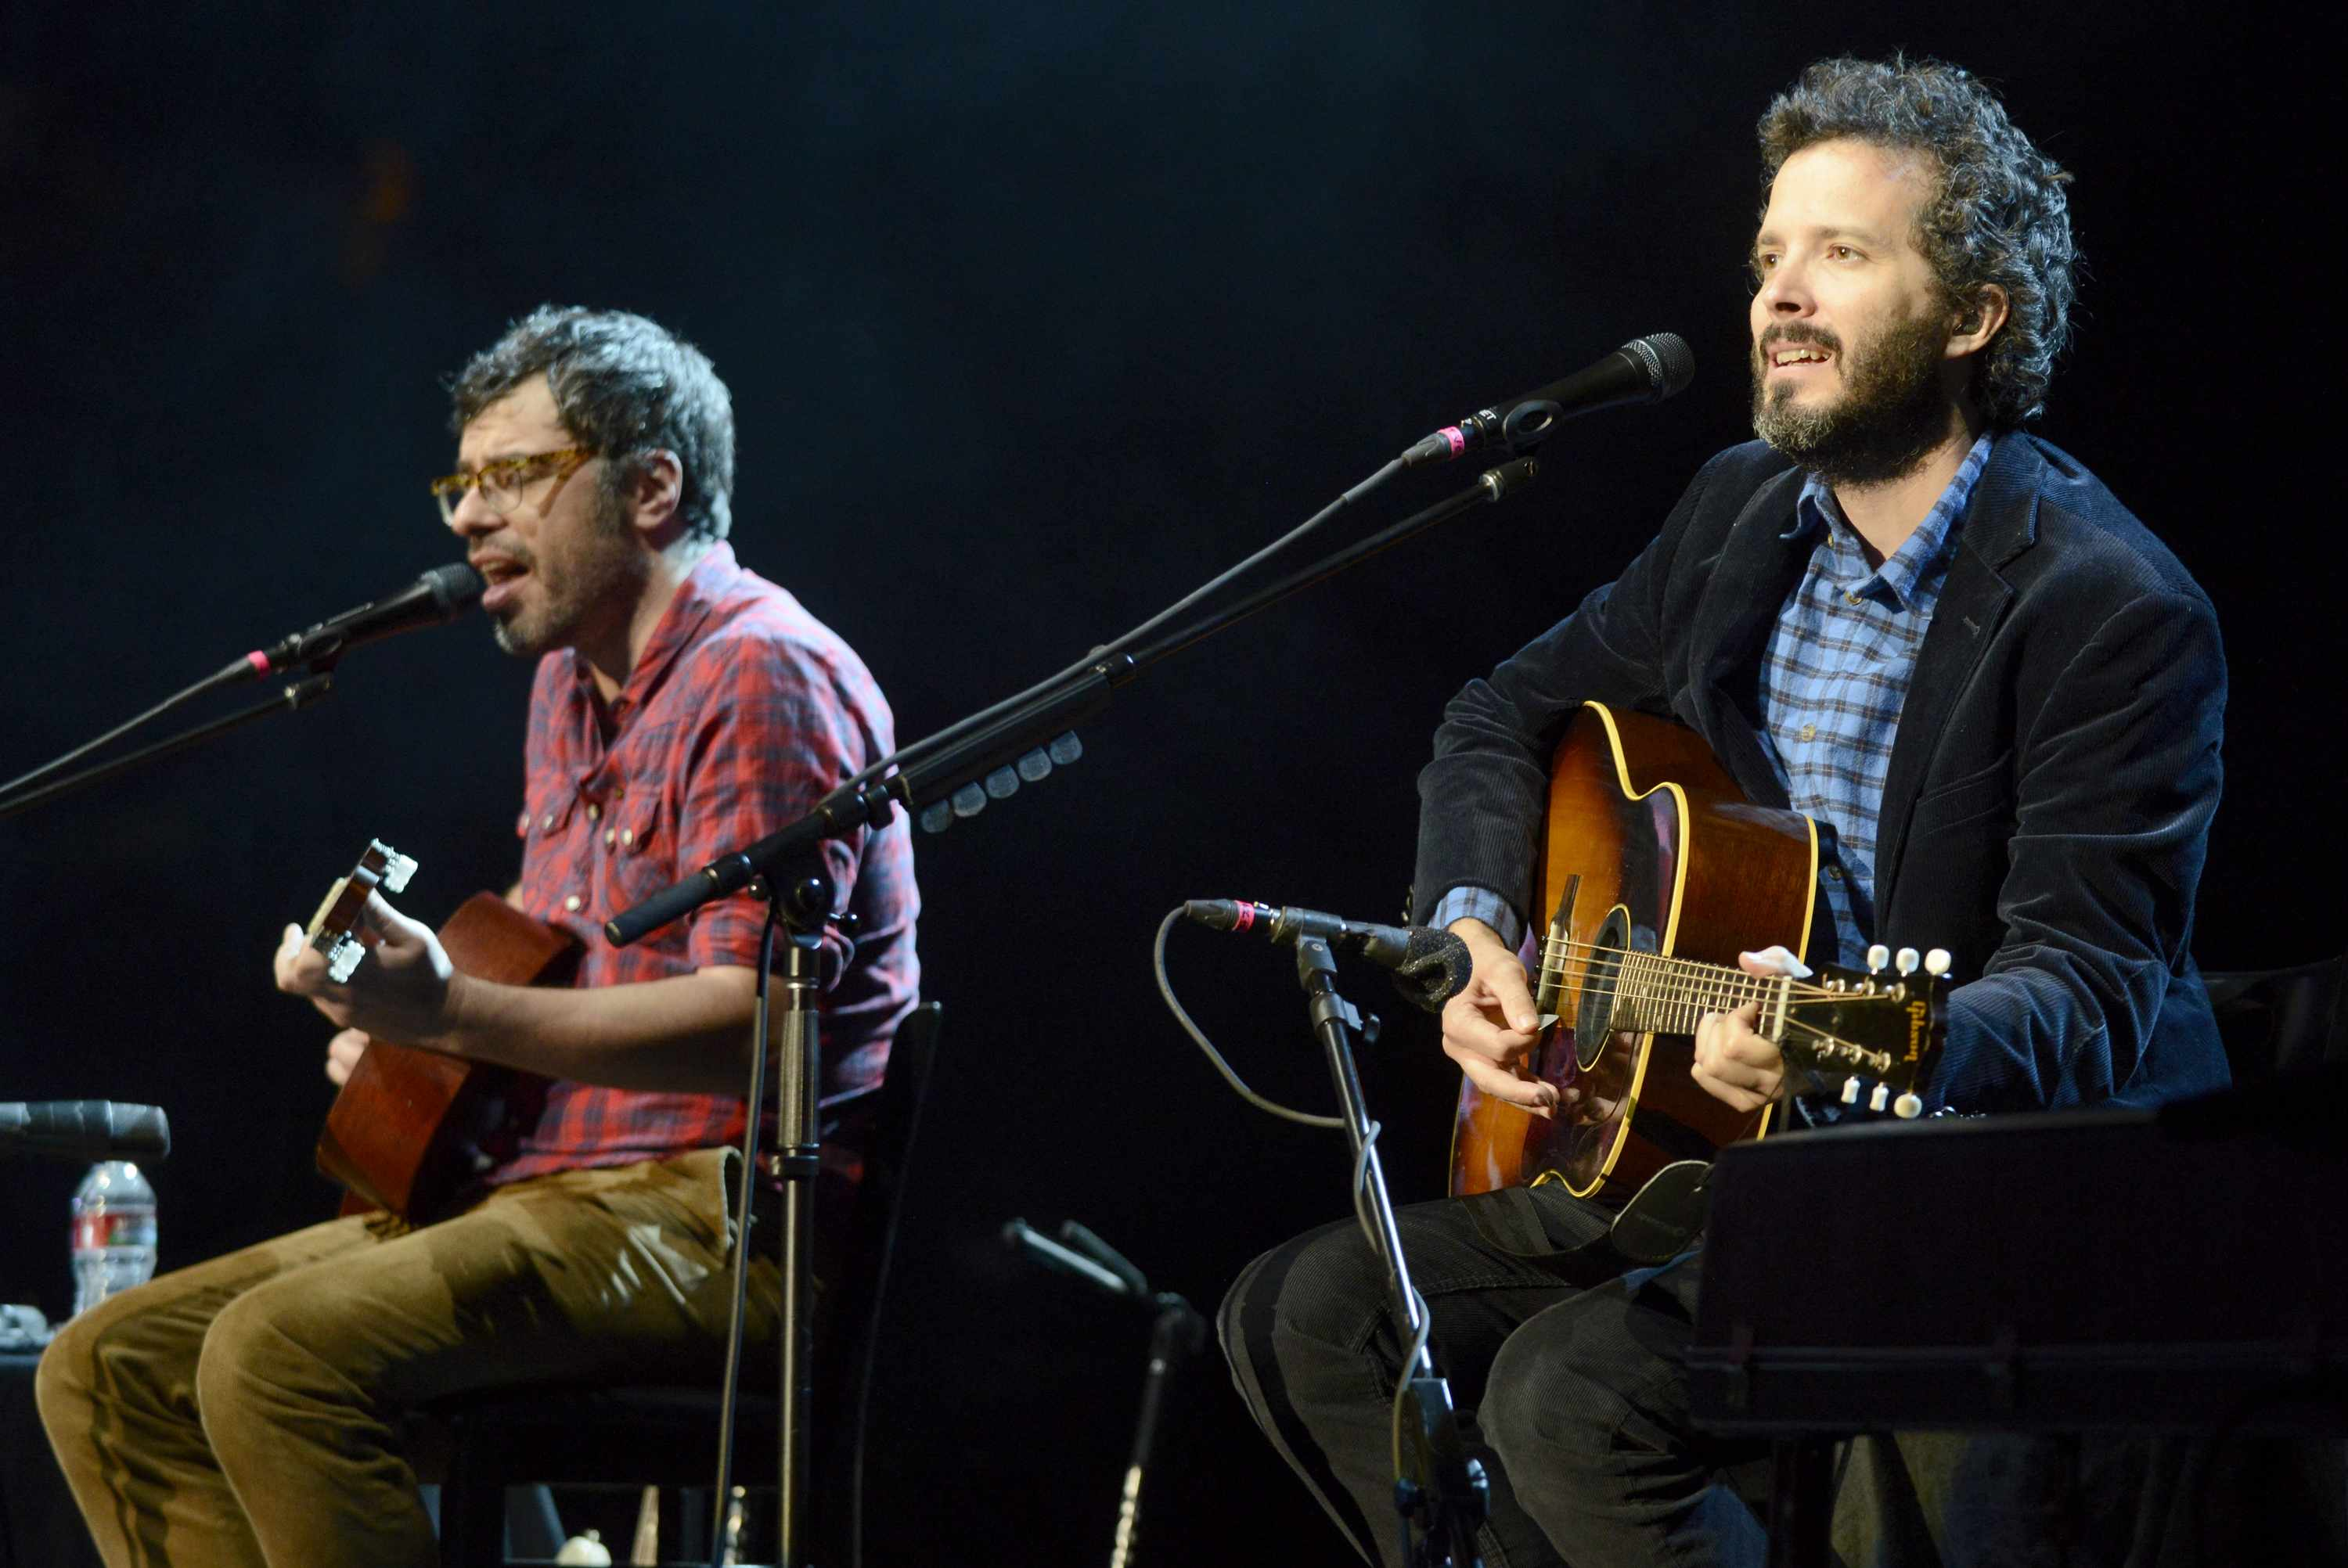 MOUNTAIN VIEW, CA - SEPTEMBER 20: Jemaine Clement (L) and Bret McKenzie of Flight of the Conchords perform as part of the The Oddball Comedy & Curiosity Festival at Shoreline Amphitheatre on September 20, 2013 in Mountain View, California. (Photo by Tim Mosenfelder/Getty Images)  Getty, TL